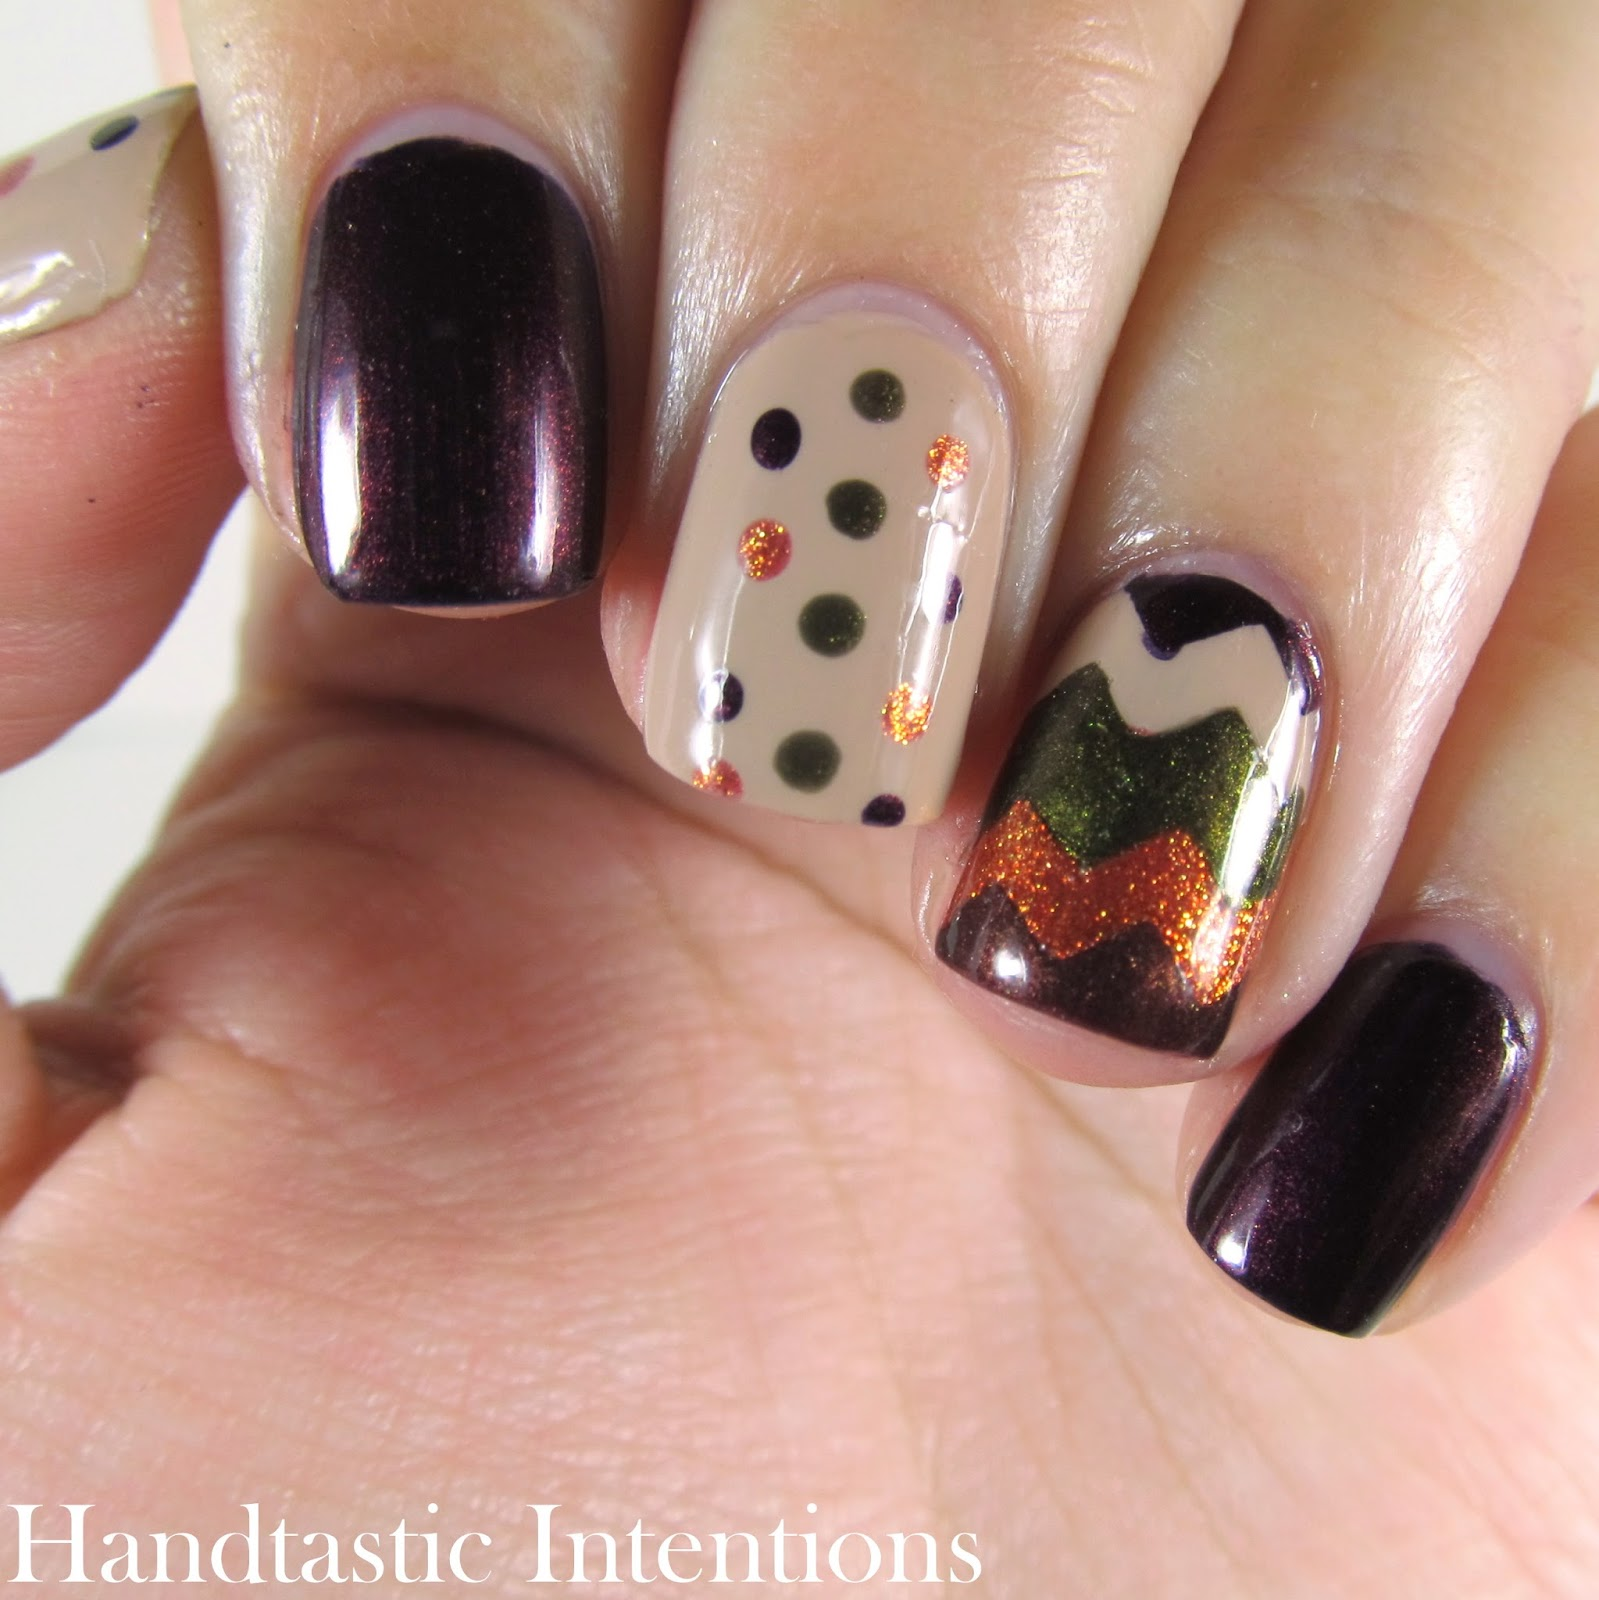 Handtastic Intentions: Fall Chevron Nail Art